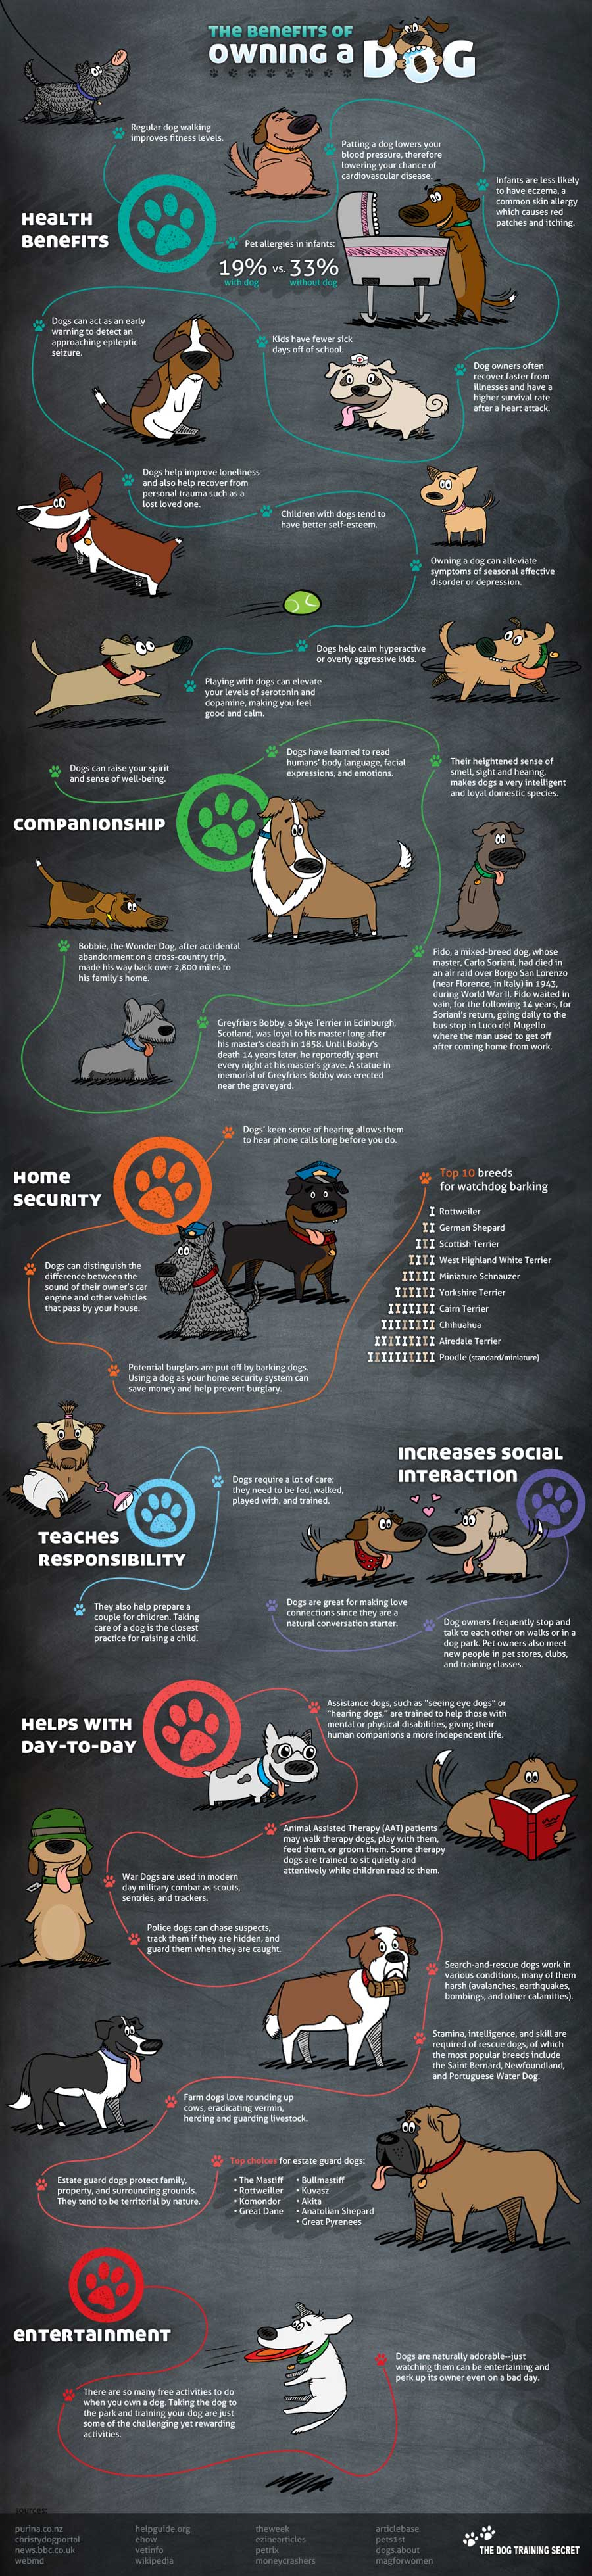 Benefits of Owning a Dog Infographic